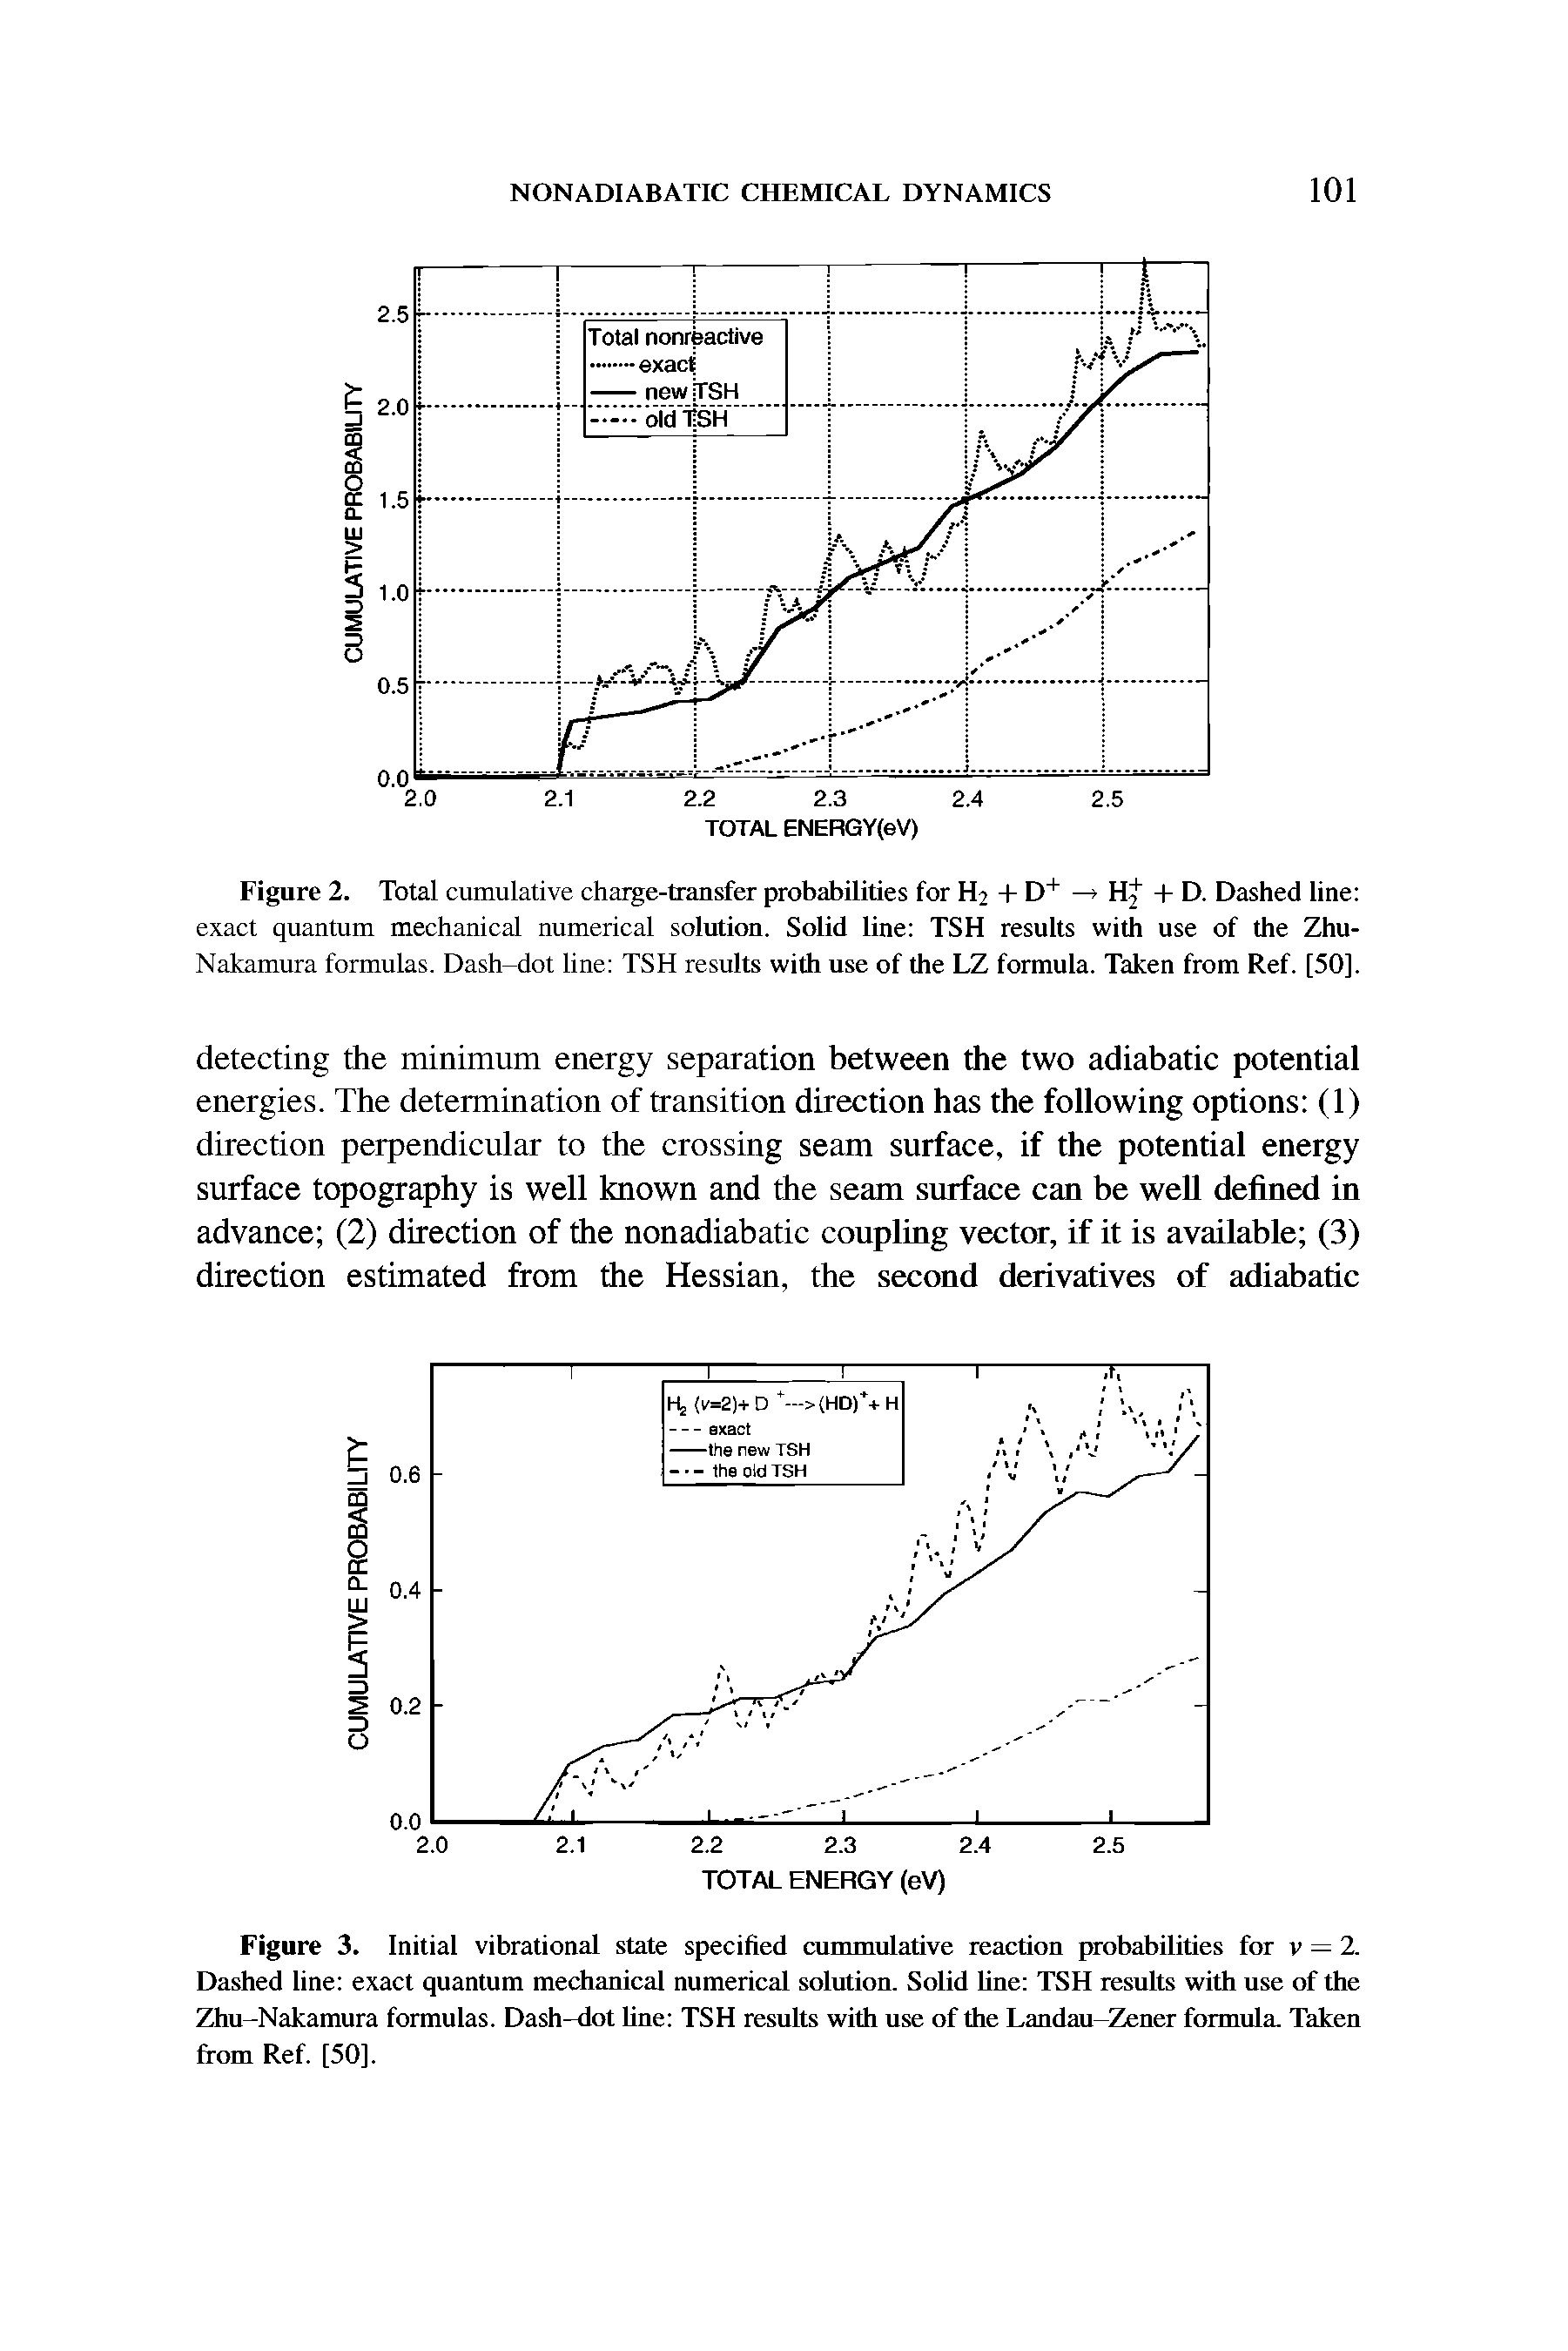 "Figure 2. Total cumulative charge-transfer probabilities for H2 + D"" "" — Hj + D. Dashed line exact quantum mechanical numerical solution. Solid line TSH results with use of the Zhu-Nakamura formulas. Dash-dot line TSH results with use of the LZ formula. Taken from Ref. [50]."